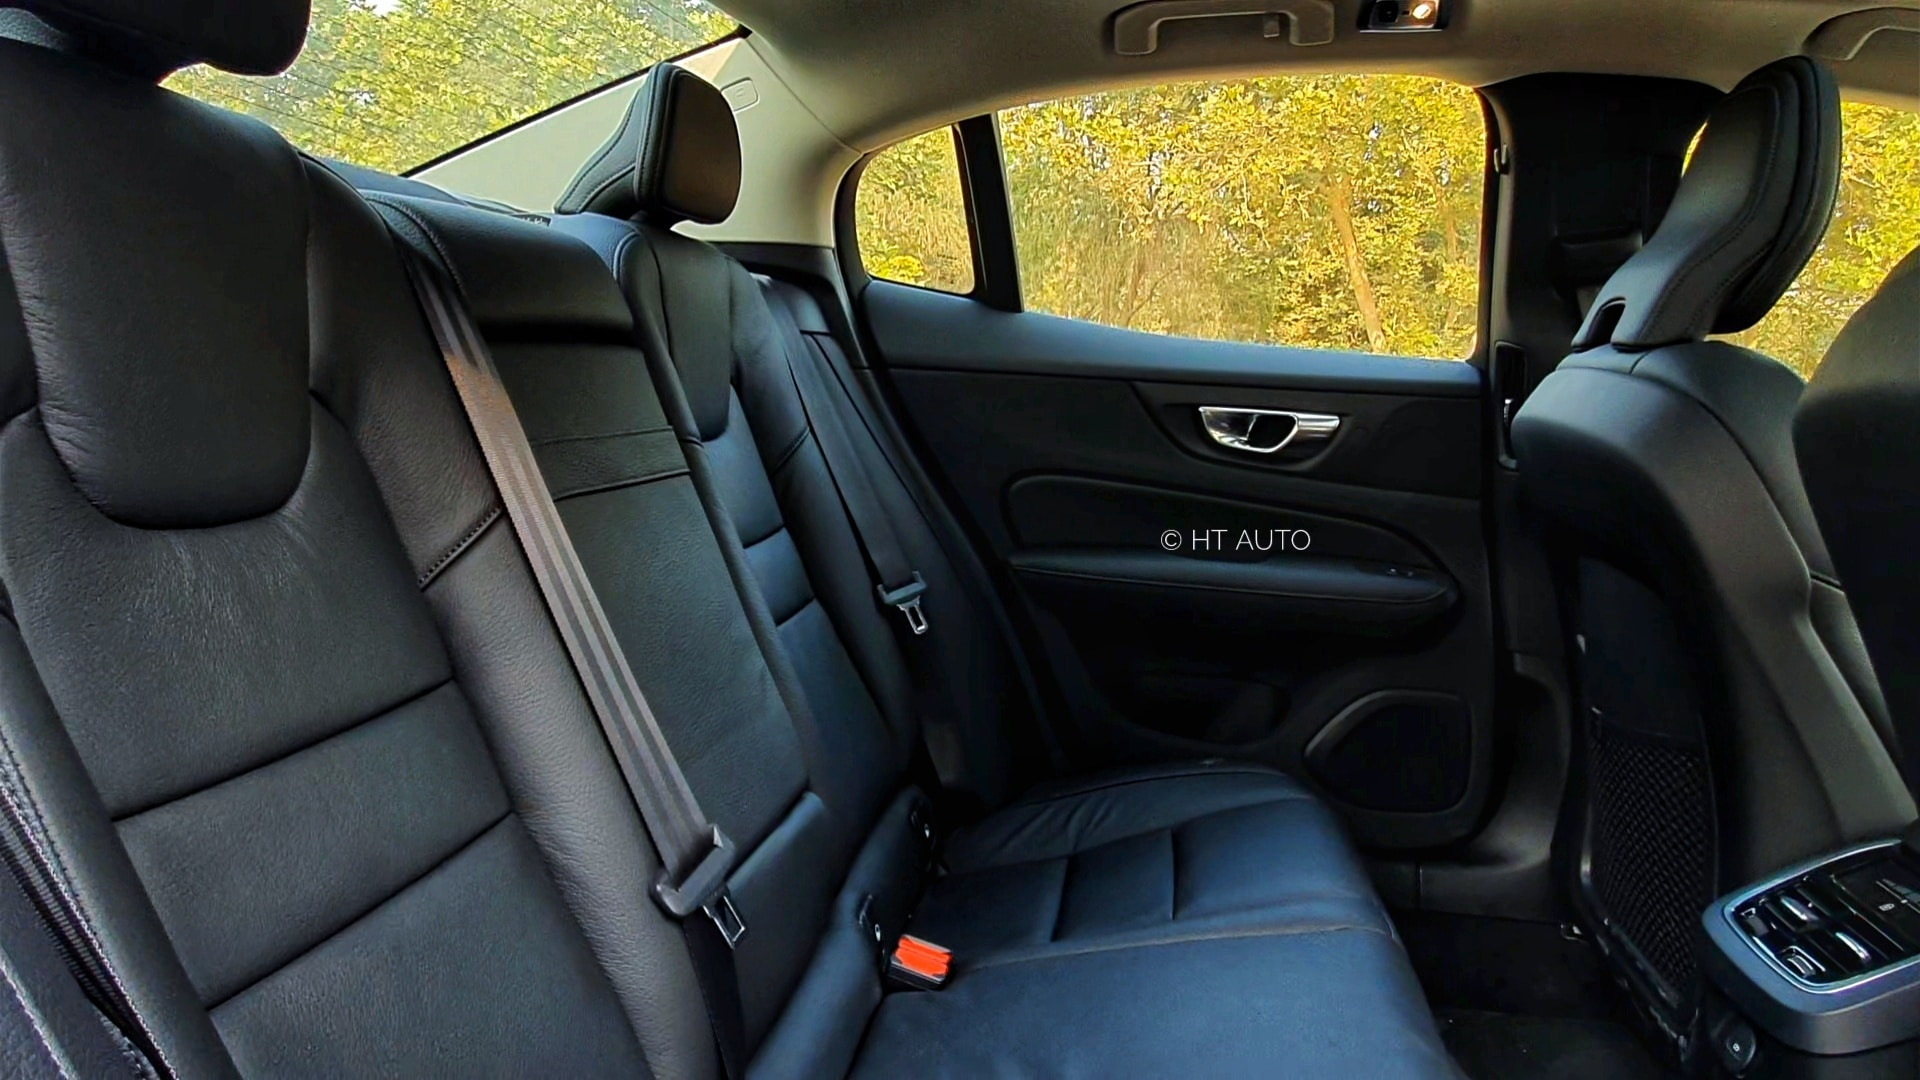 The rear seats offer generous amounts of knee-room, under-thigh support and head room while the cushioning and back recline angle are decent.